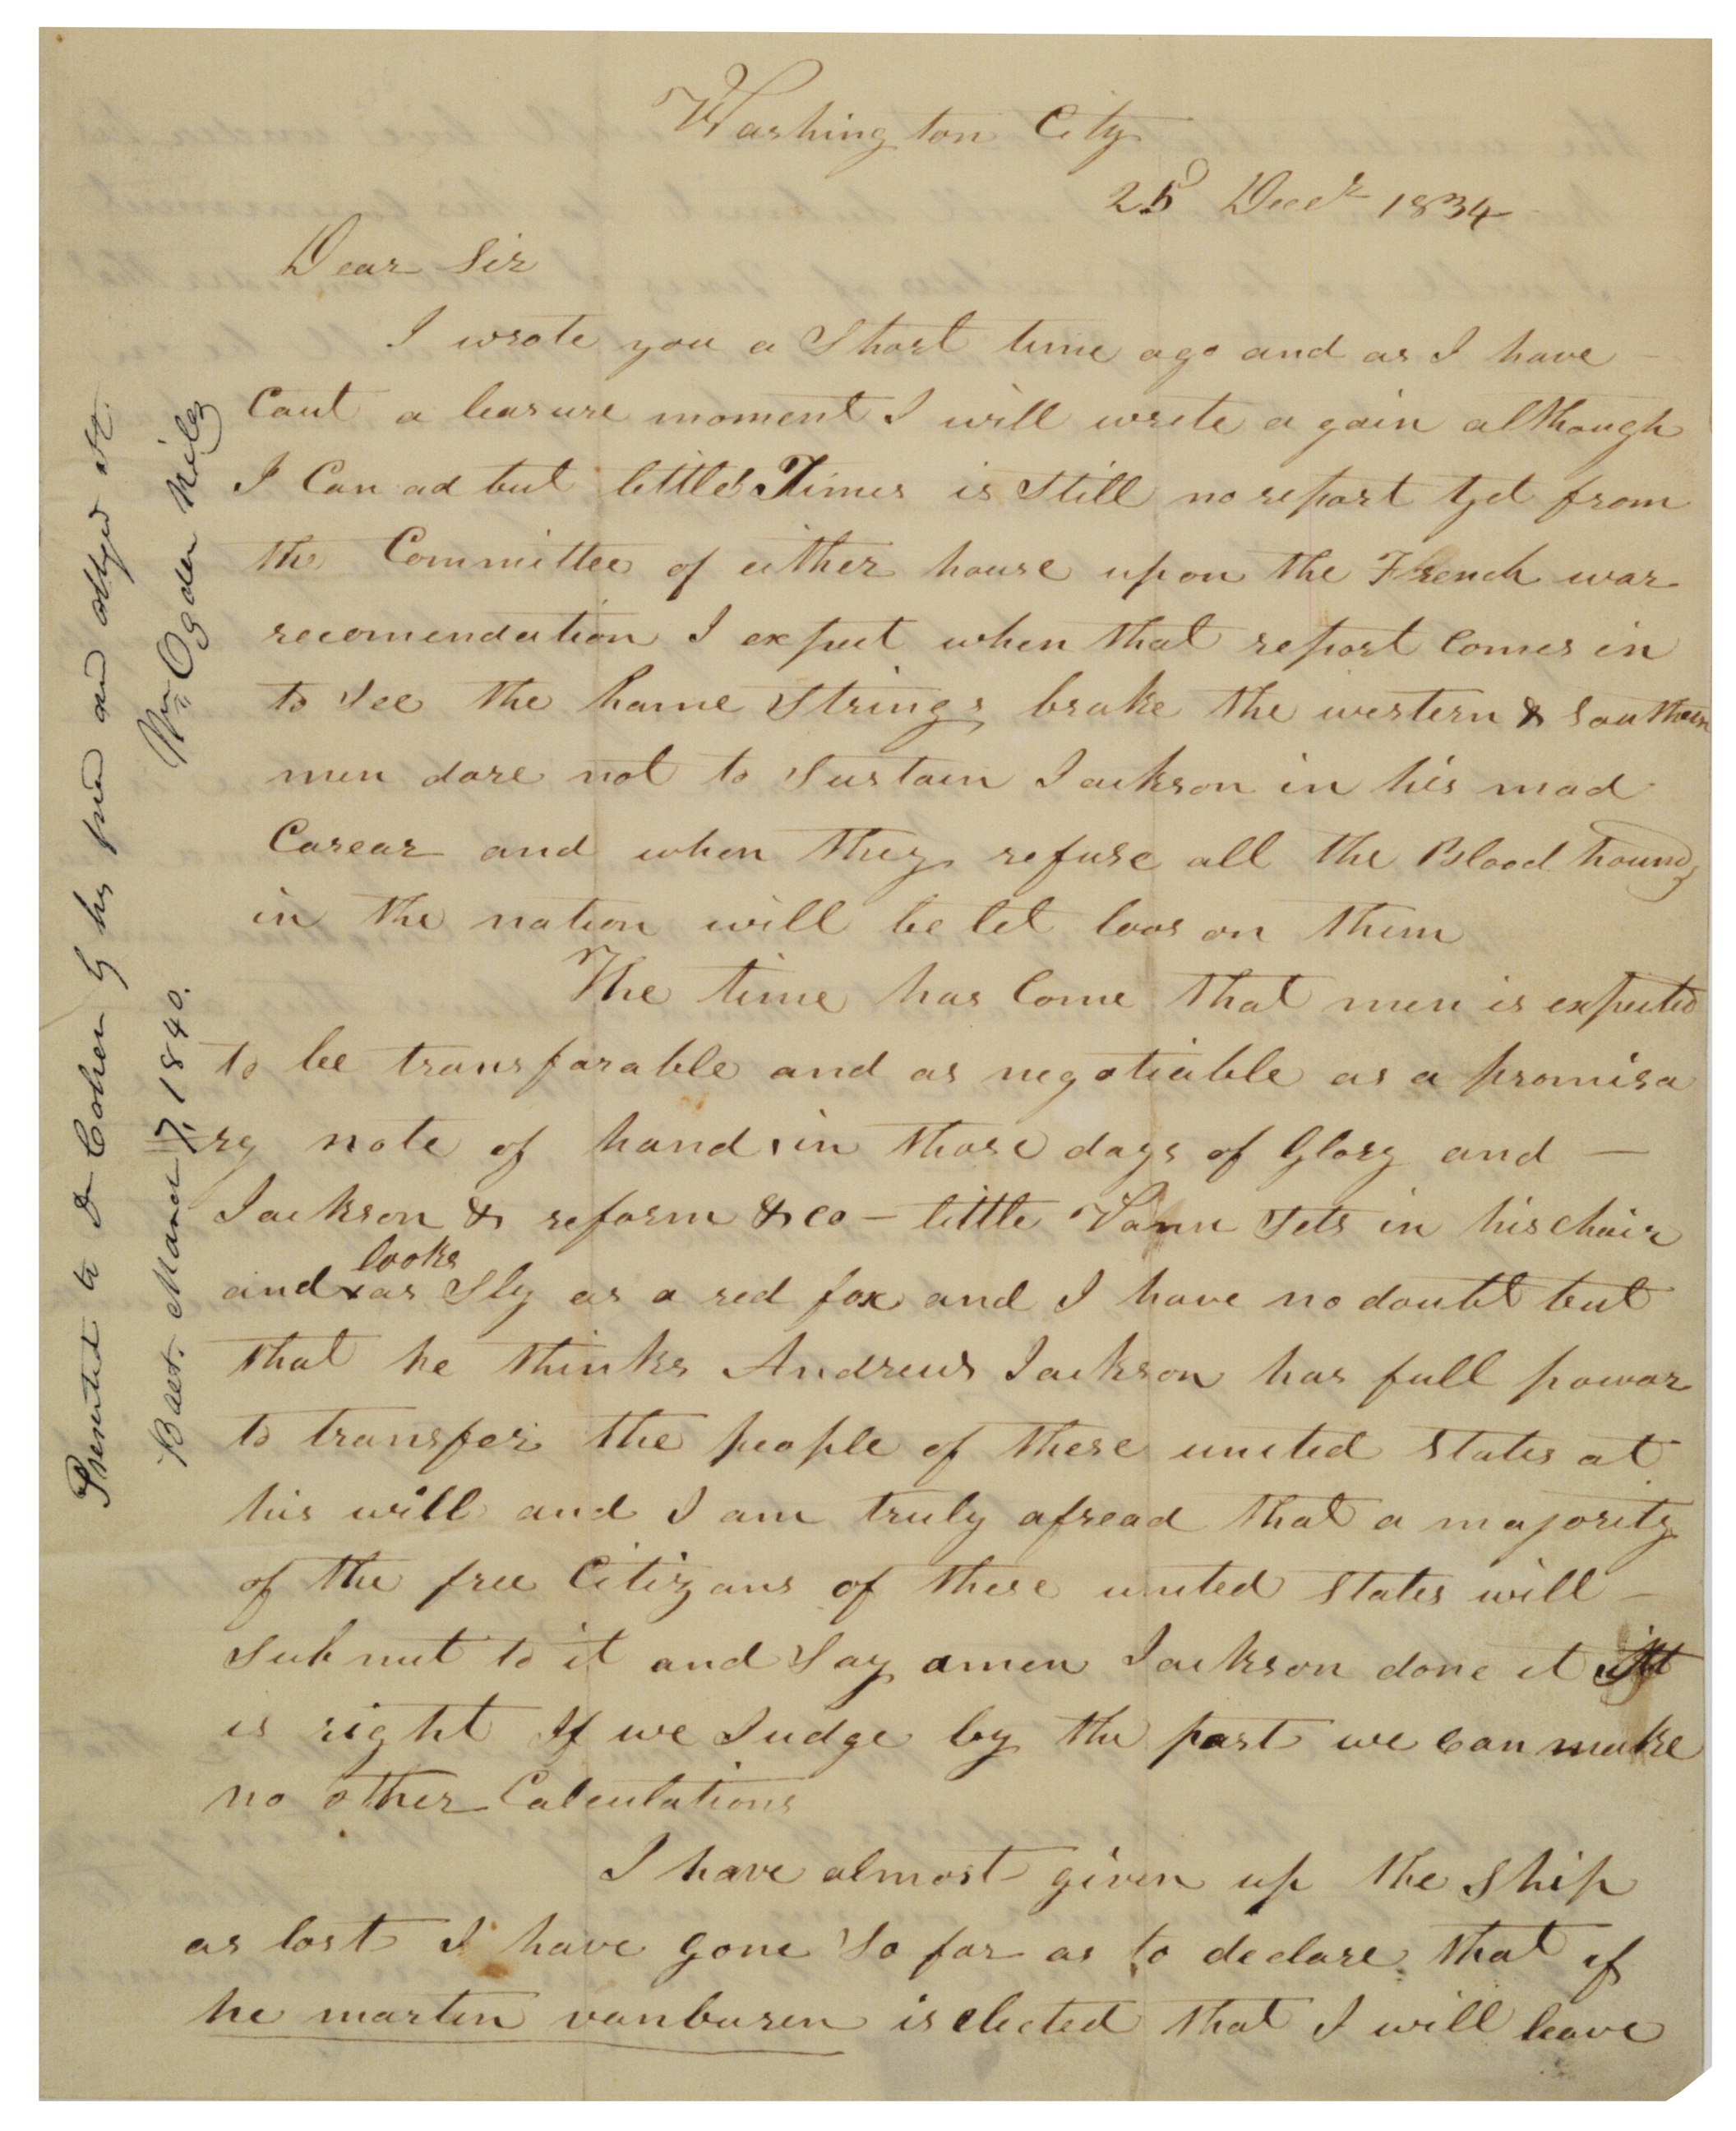 davy crockett on the removal of the cherokees gilder   written in 1834 davy crockett complains about president andrew jackson s forced removal of the cherokees from their homes to oklahoma